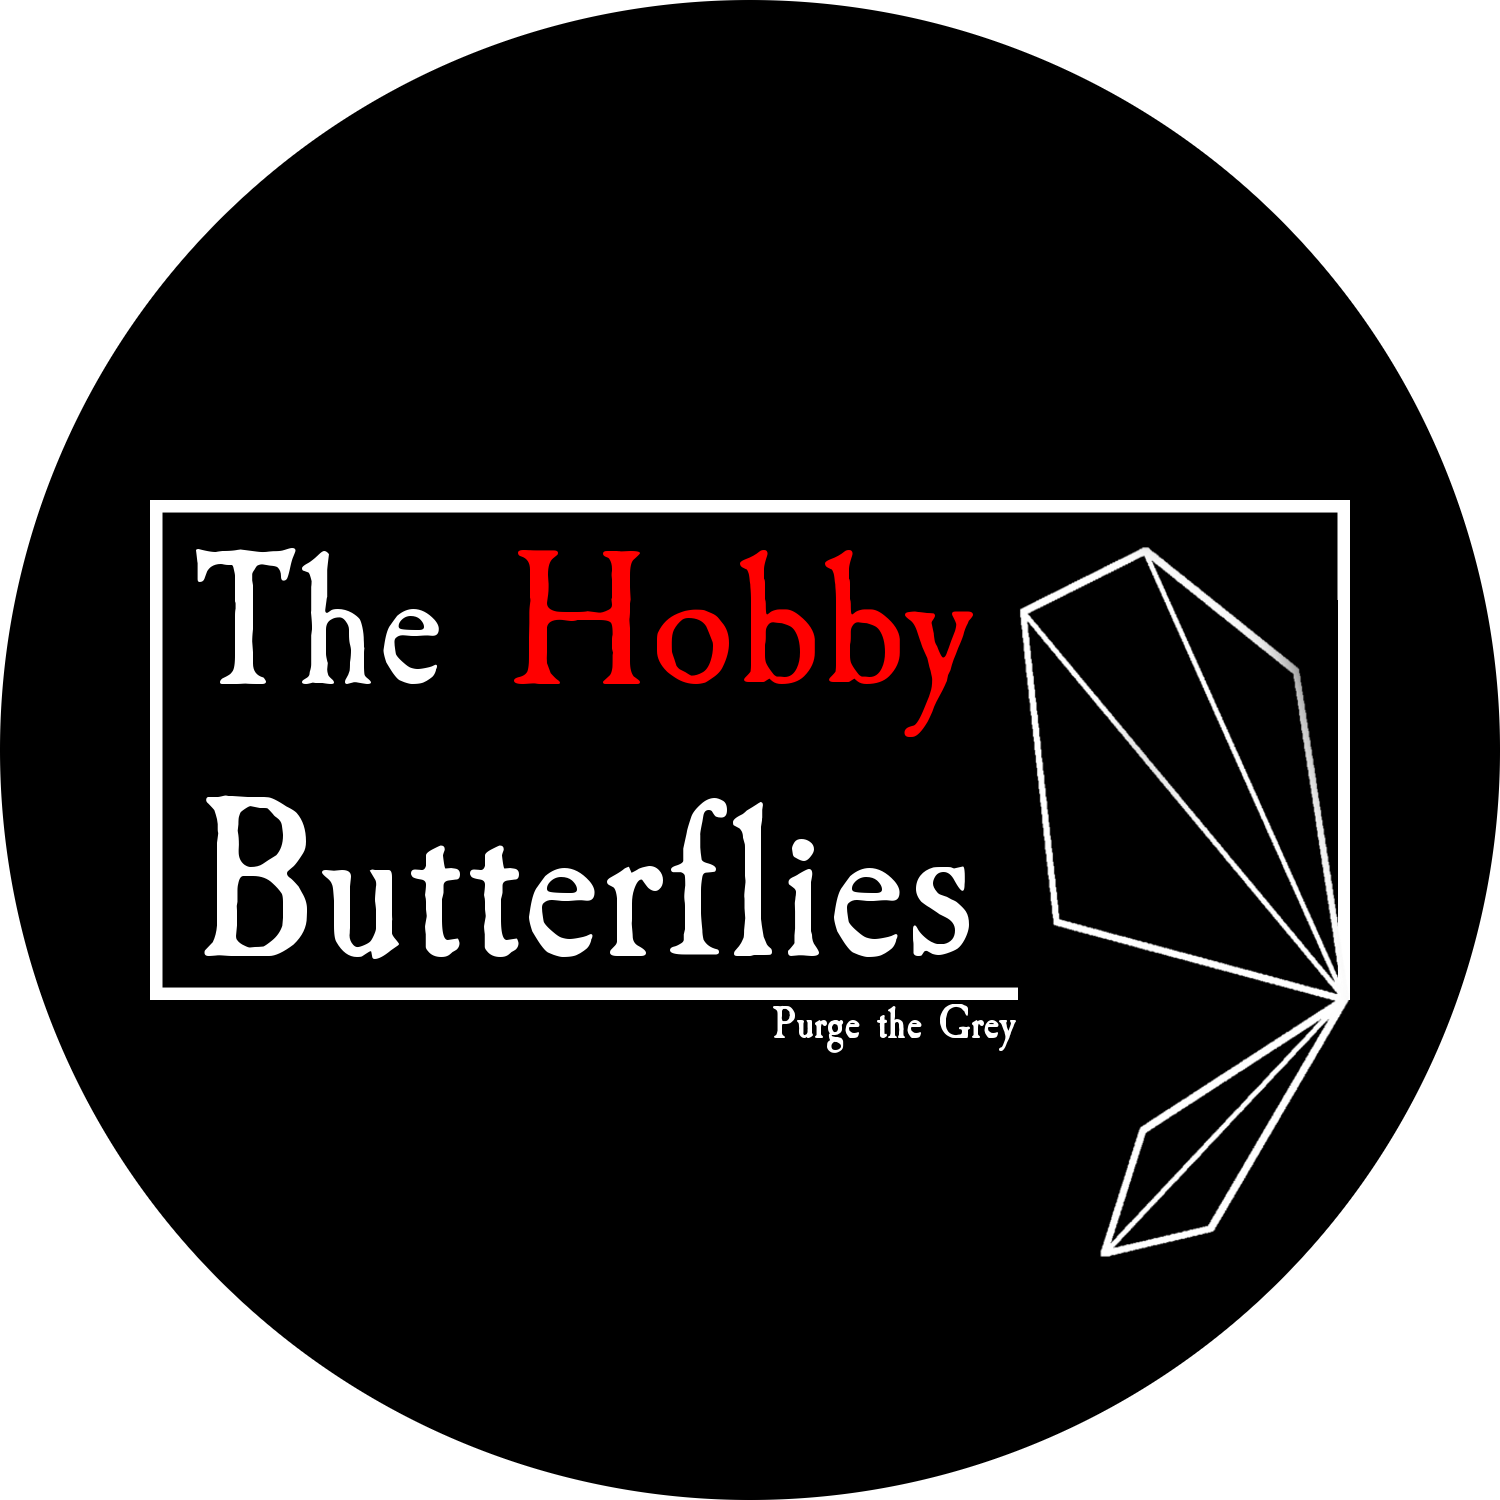 The Hobby Butterflies